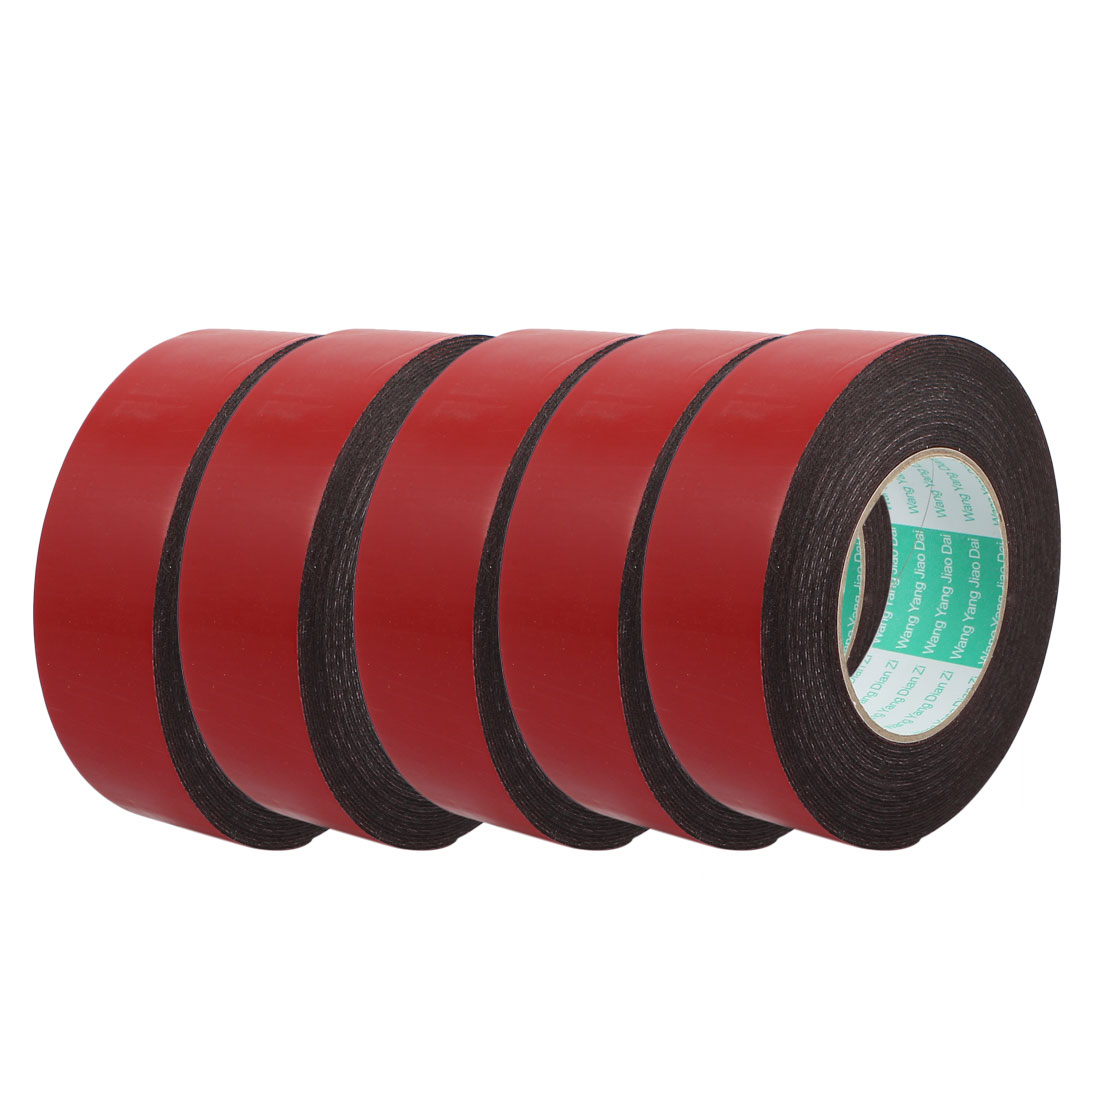 5Pcs 40mm x 1mm Single Sided Self Adhesive Shockproof Sponge Foam Tape 10M Red